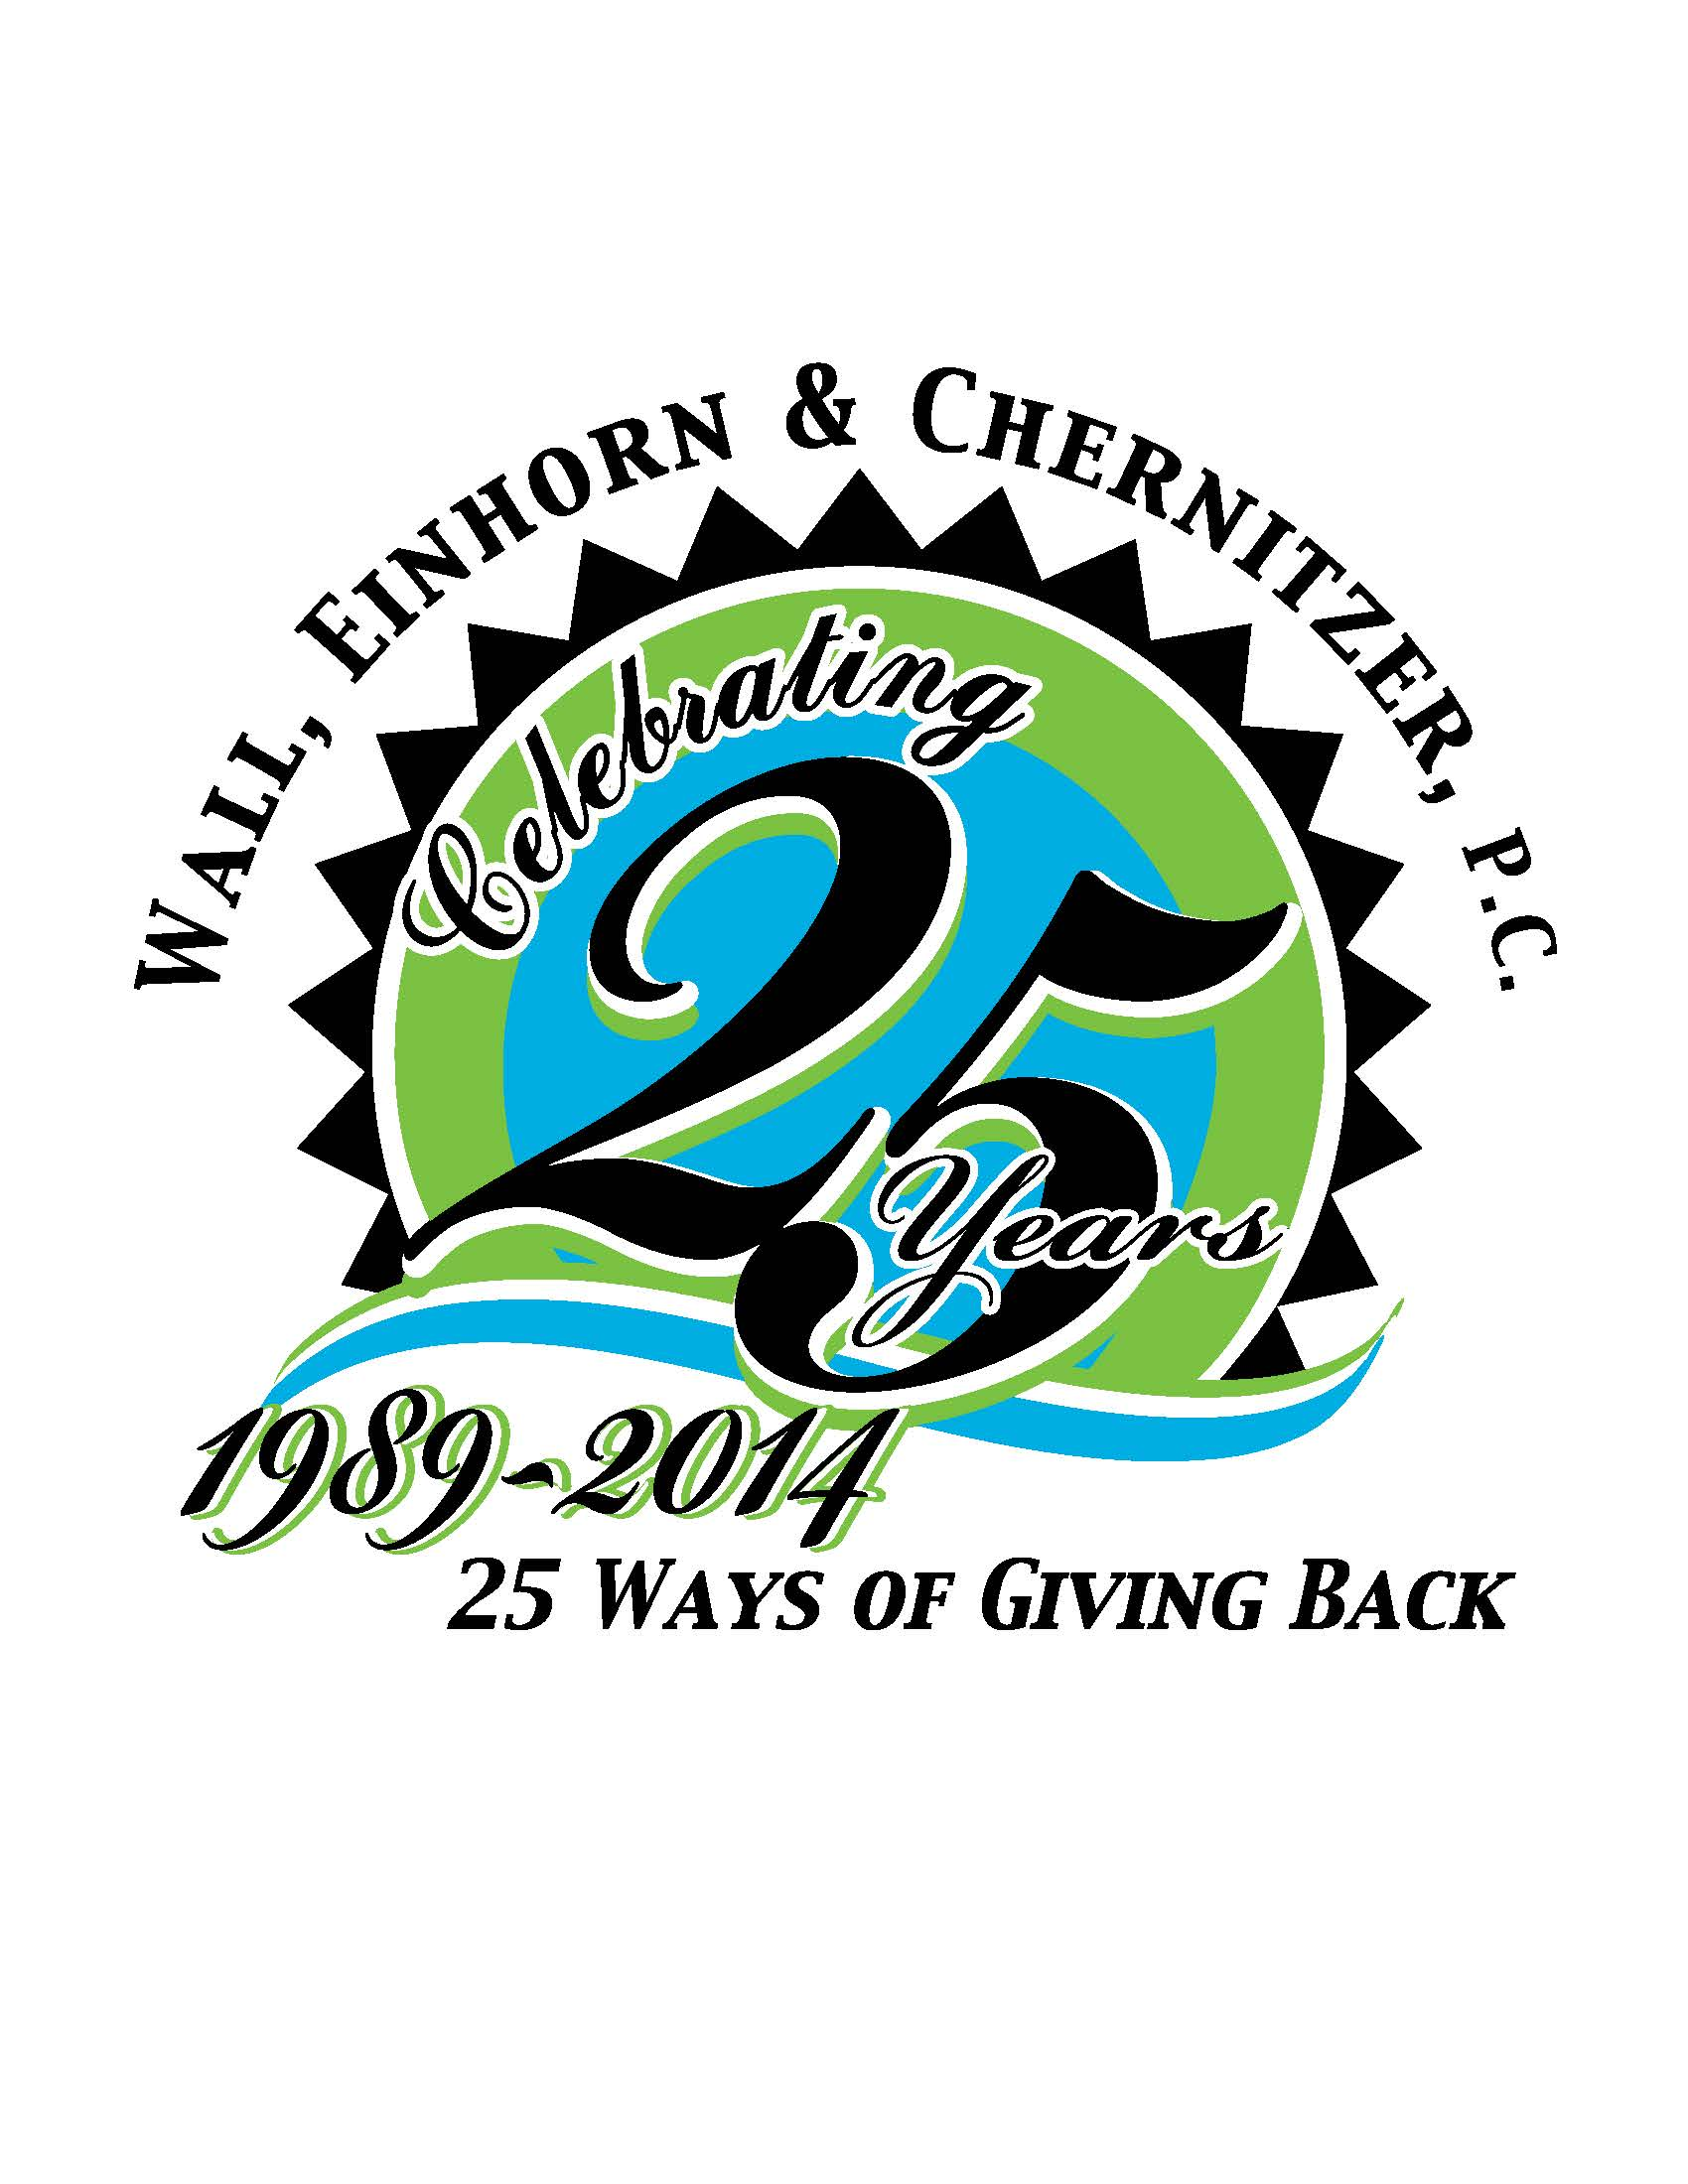 "Wall, Einhorn & Chernitzer, P.C. ""25 for 25"" Silver Anniversary Campaign to Benefit Local Charities"